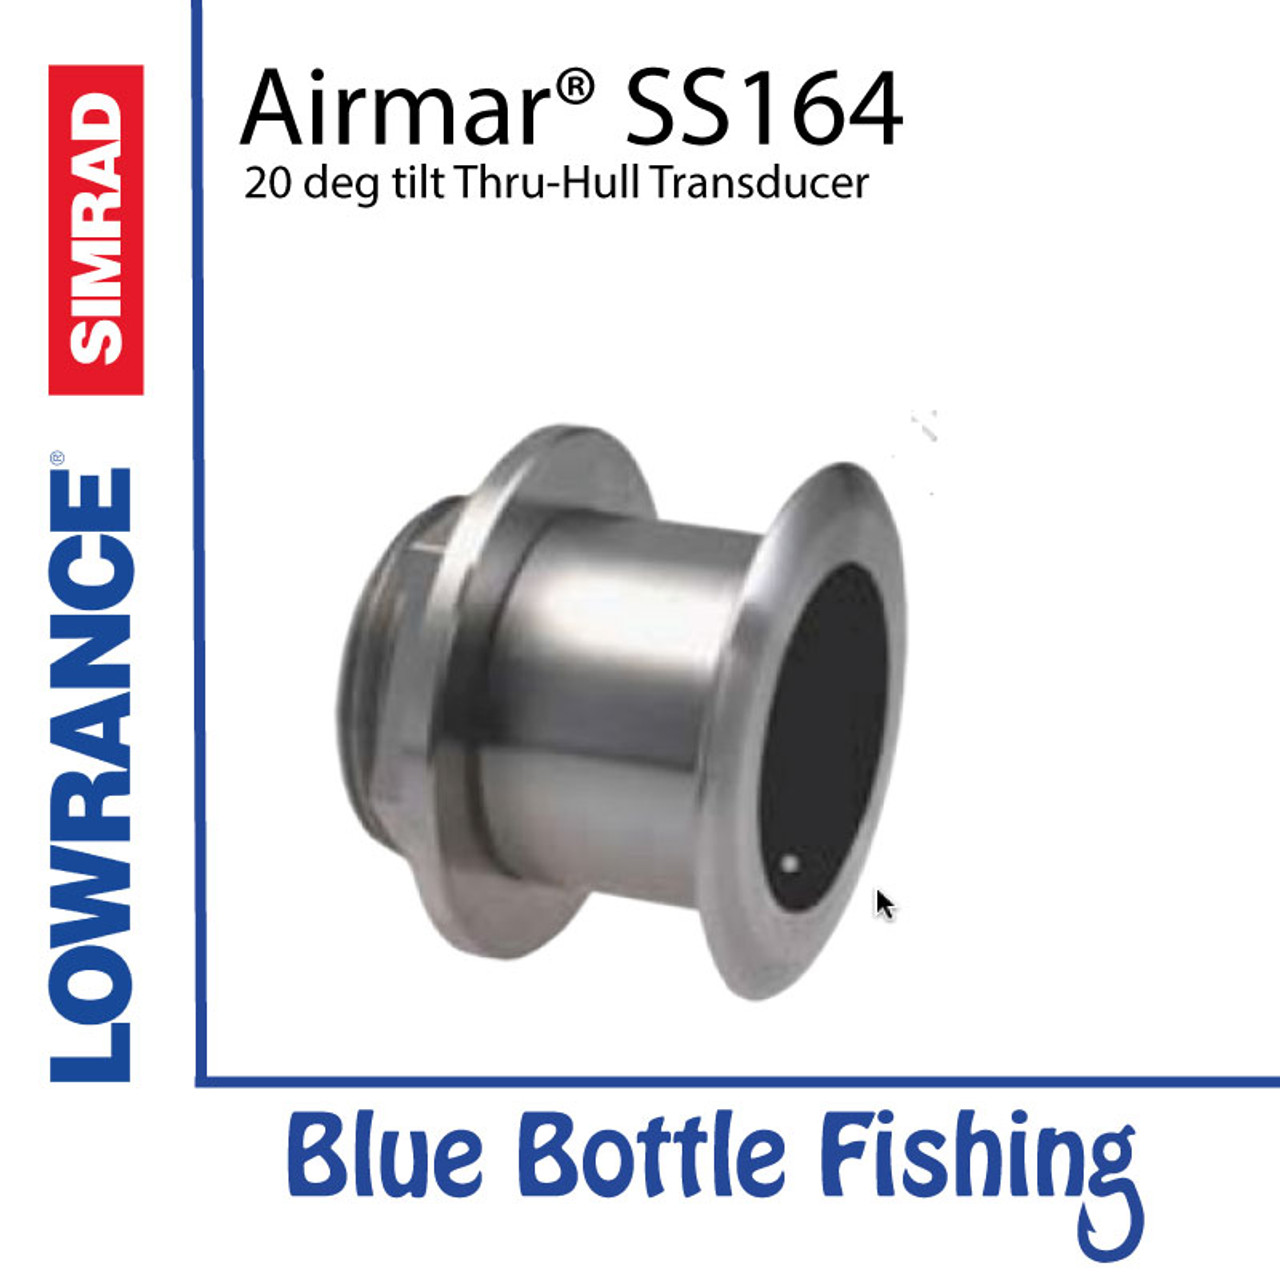 SS164 Stainless Steel low profile thru-hull 1 kW | Blue